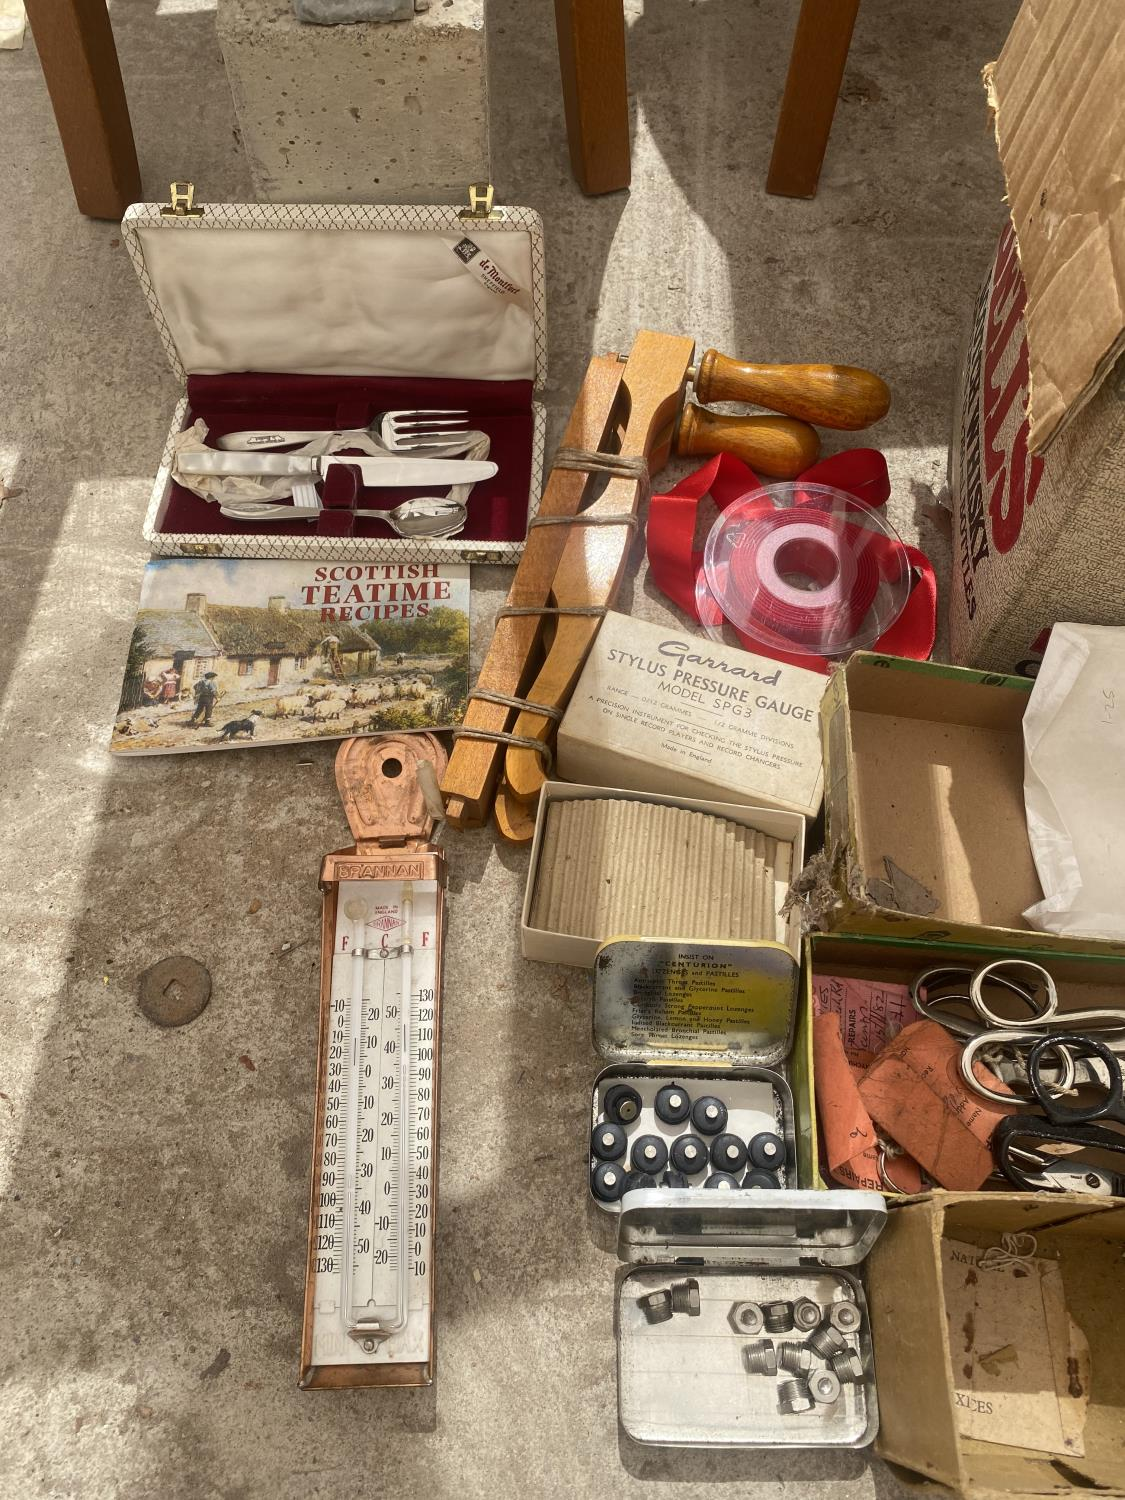 AN ASSORTMENT OF SEWING ITEMS TO INCLUDE MATERIAL, SCISSORS ETC - Image 3 of 4